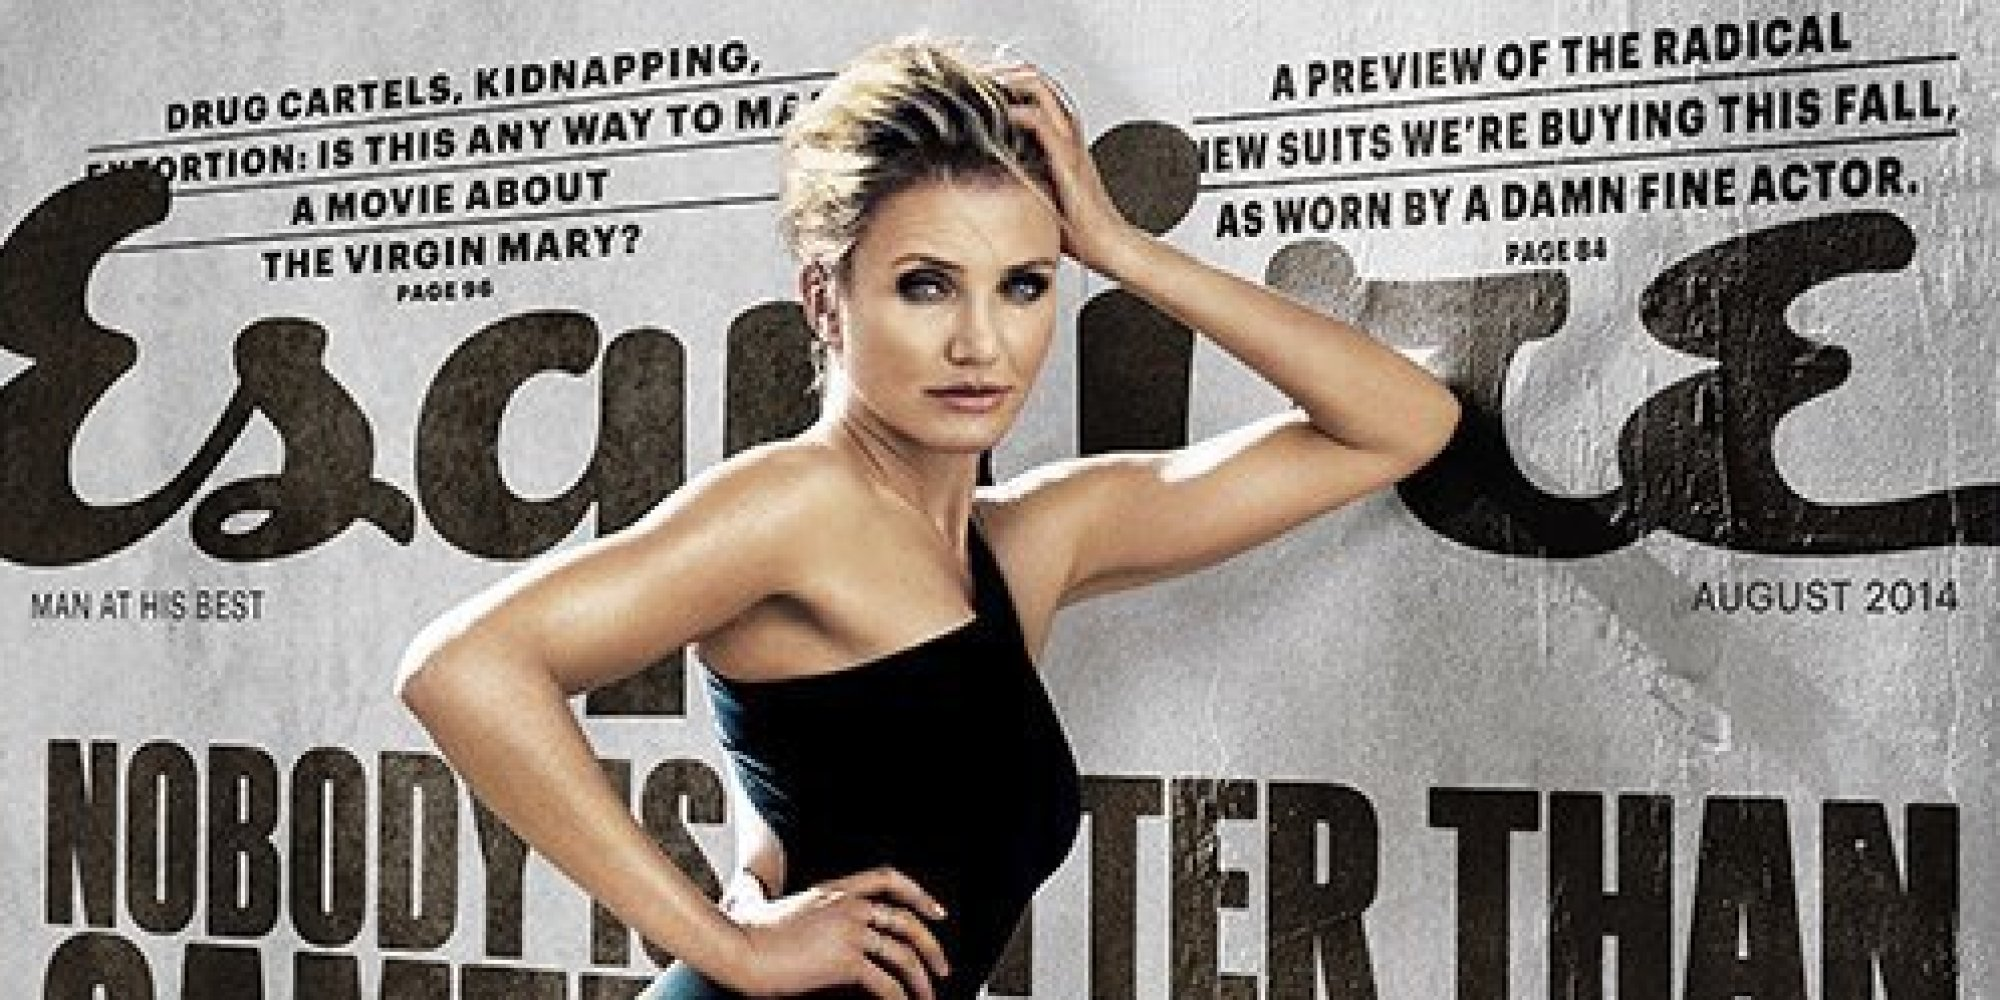 Cameron Diaz Opens Up To Esquire About Getting Naked For ... Cameron Diaz Pregnant 2019 Adoption